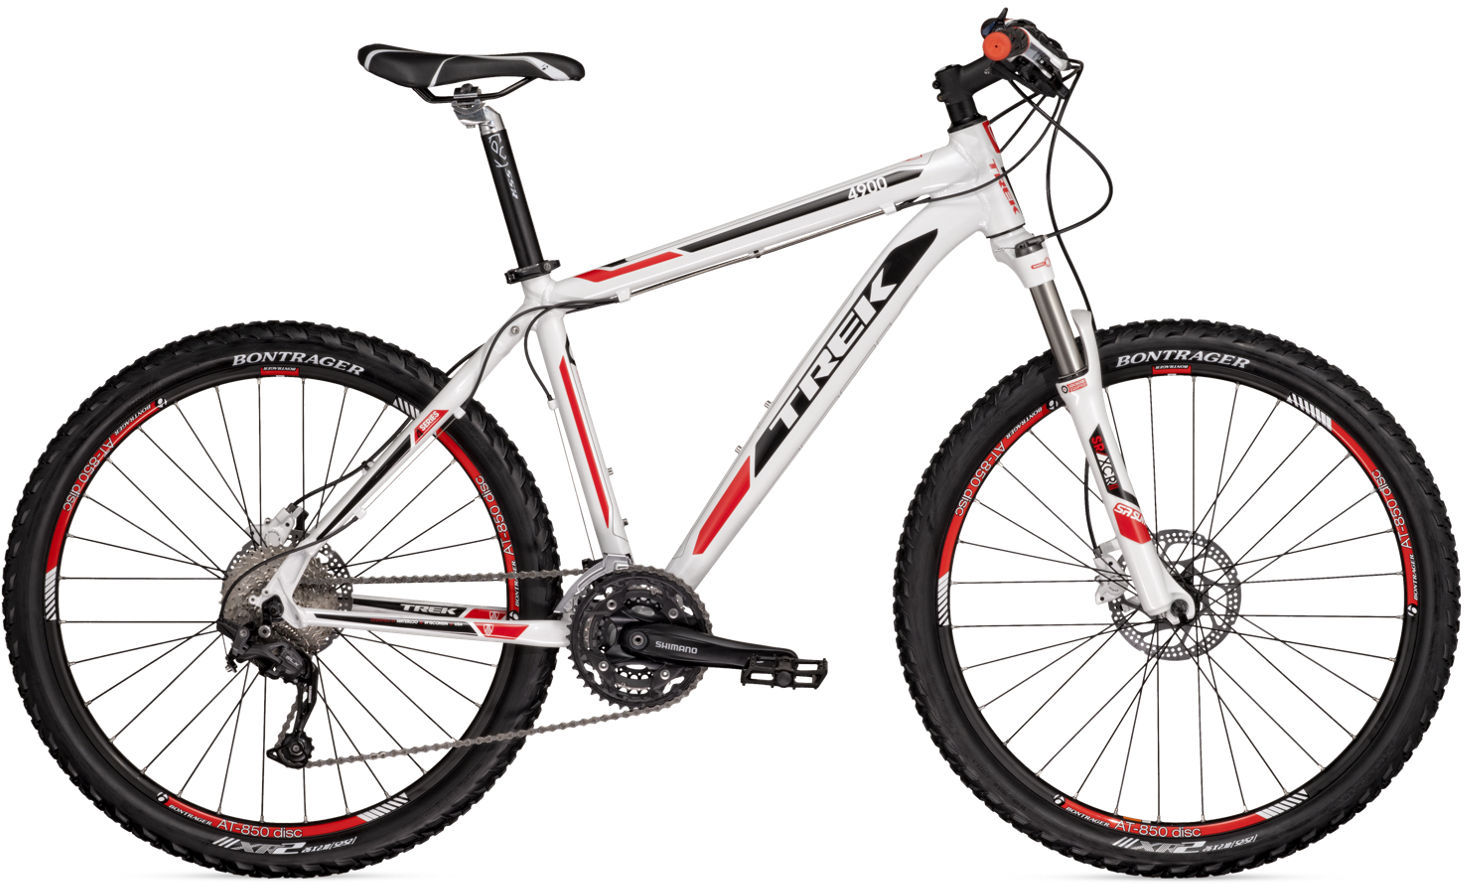 Latest Bicycle Inovations 2015 as well Forklift Parts Diagram in addition Follow Teslas Tsla Remarkable Run To Be e One Of The Worlds Most Valuable Carmakers as well General Motors Parts Diagrams further Best Replica Jewelry Site. on 2014 nissan atlas